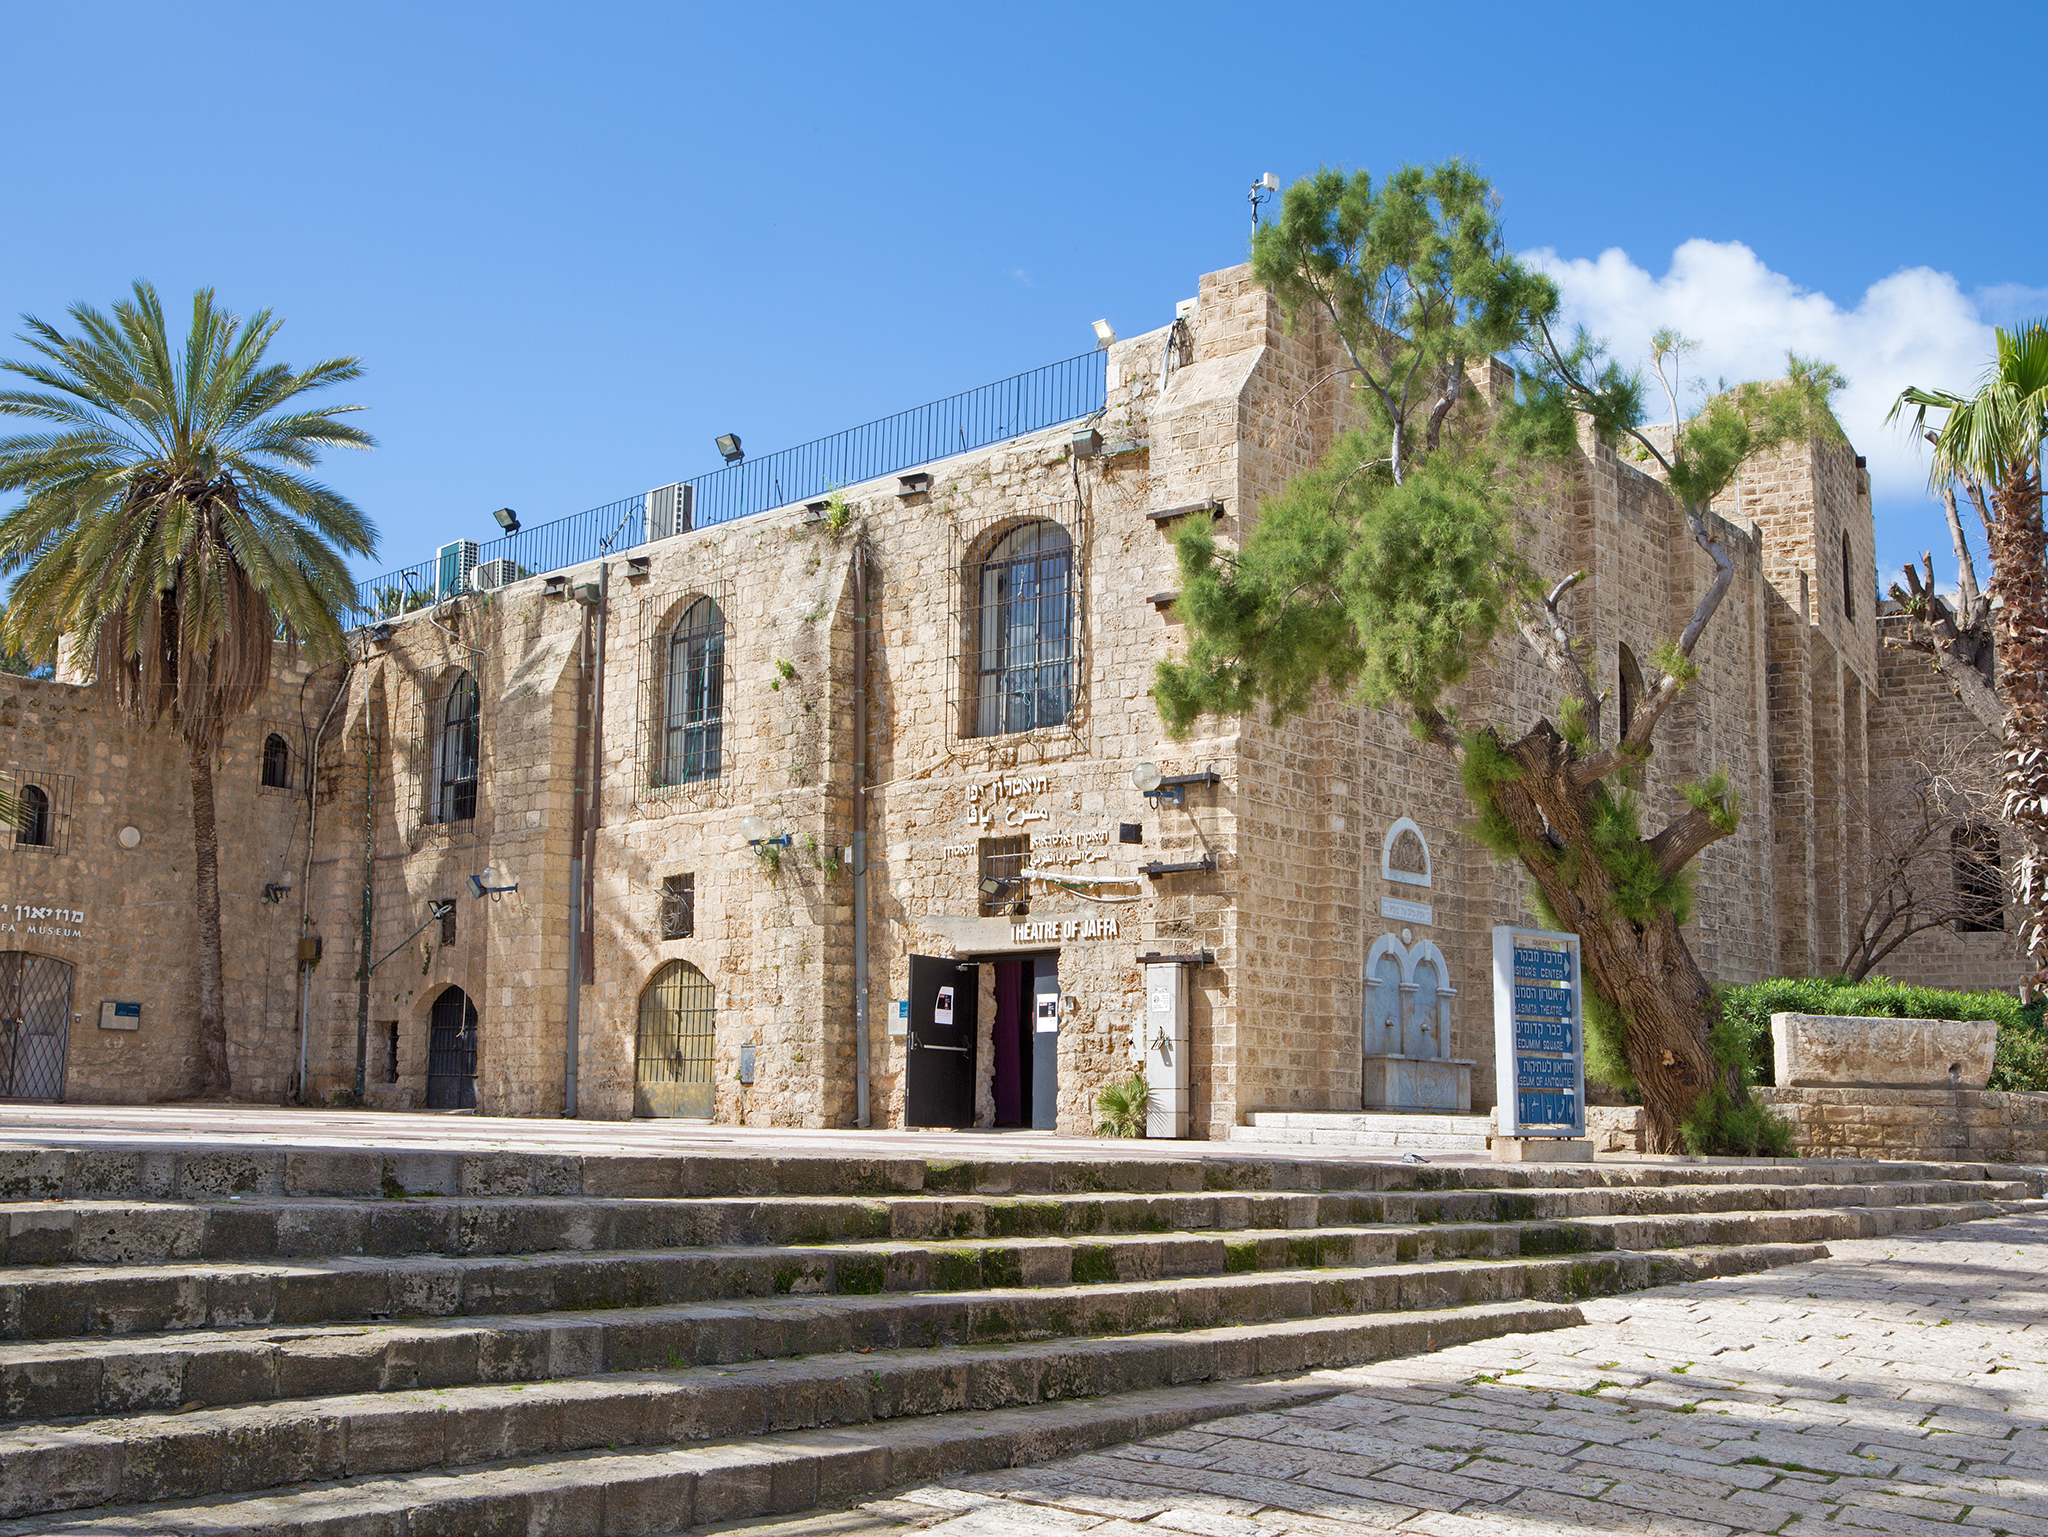 Jaffa Theatre: A Stage for Arab-Hebrew Culture